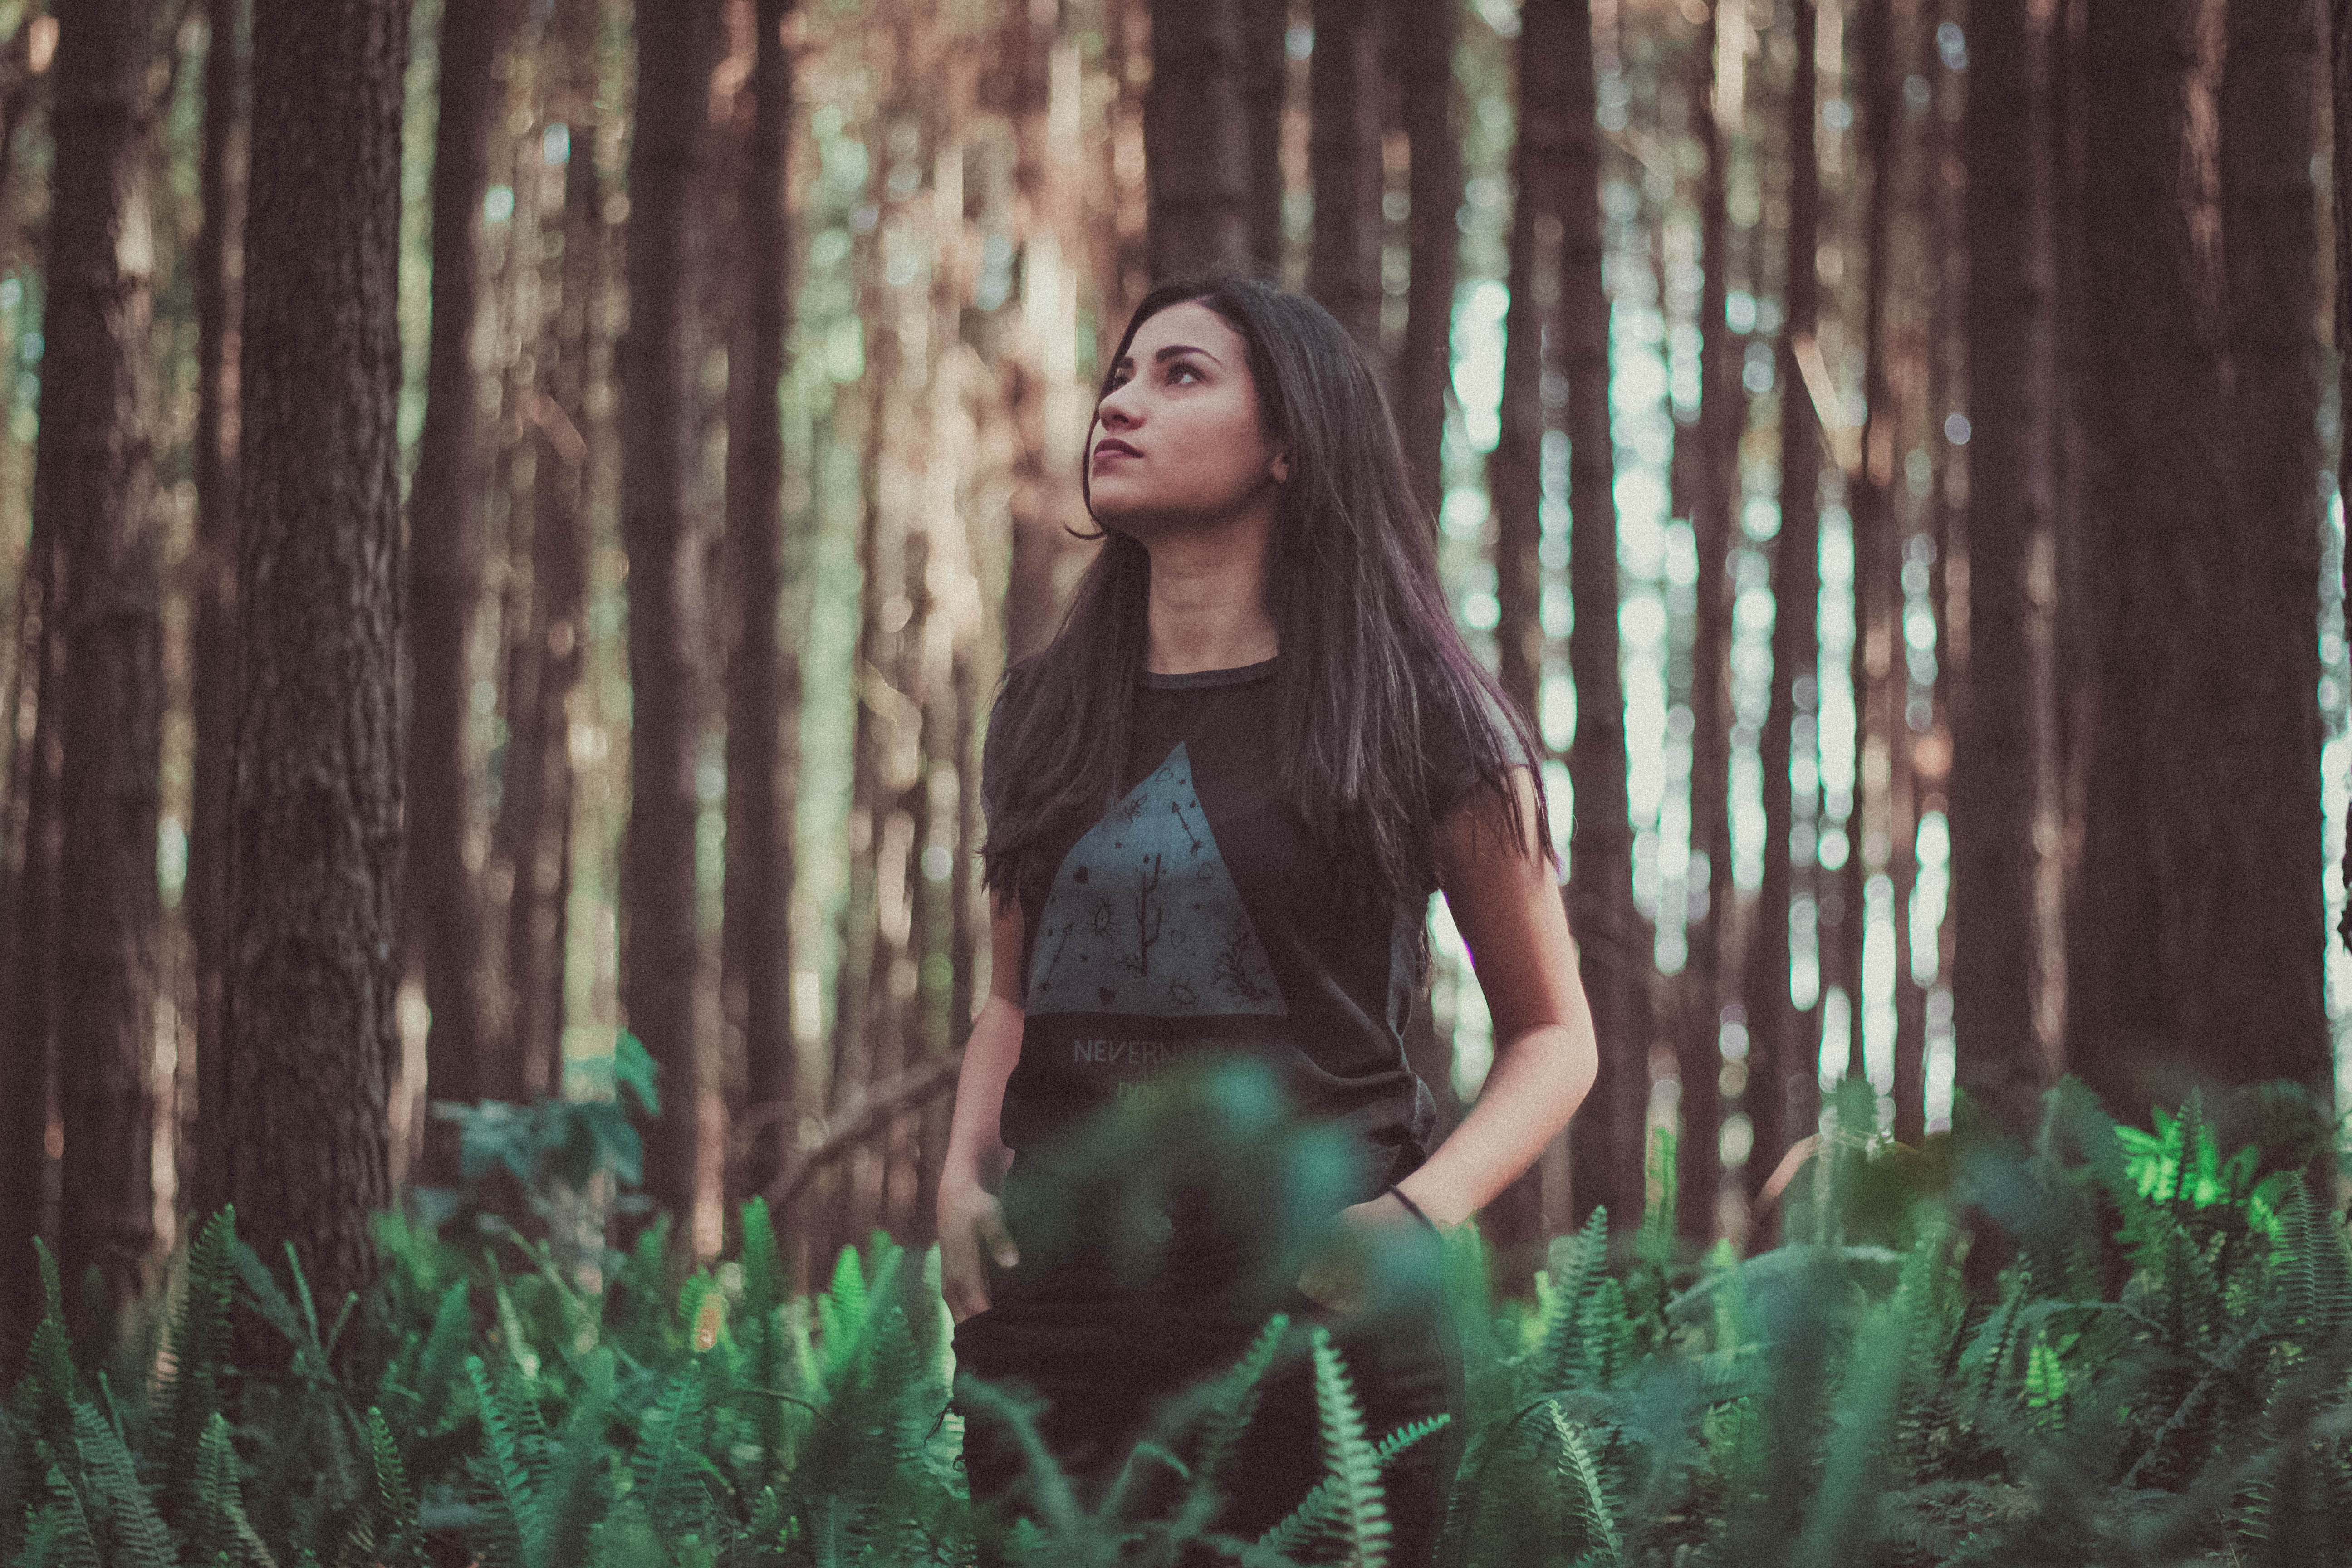 A young woman stands with her hands in her pockets, among ferns and trees in a forest. She is looking up towards the sky. She could be wondering if she can trust God. To her we would say yes!